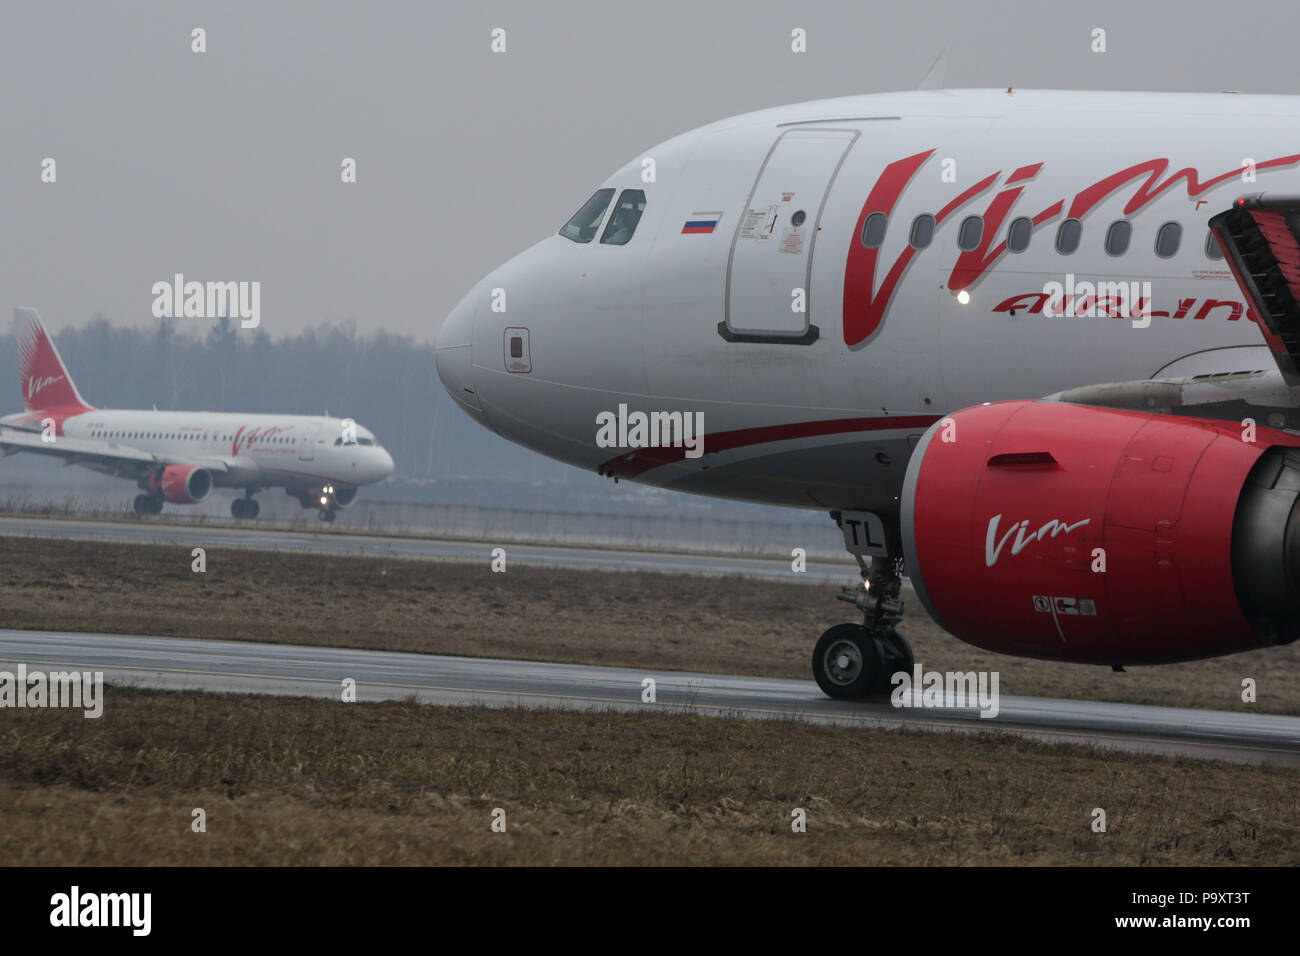 Two Airbus A319 civil jet airplanes of VIM Airlines at Domodedovo airport, Moscow, Russia. - Stock Image